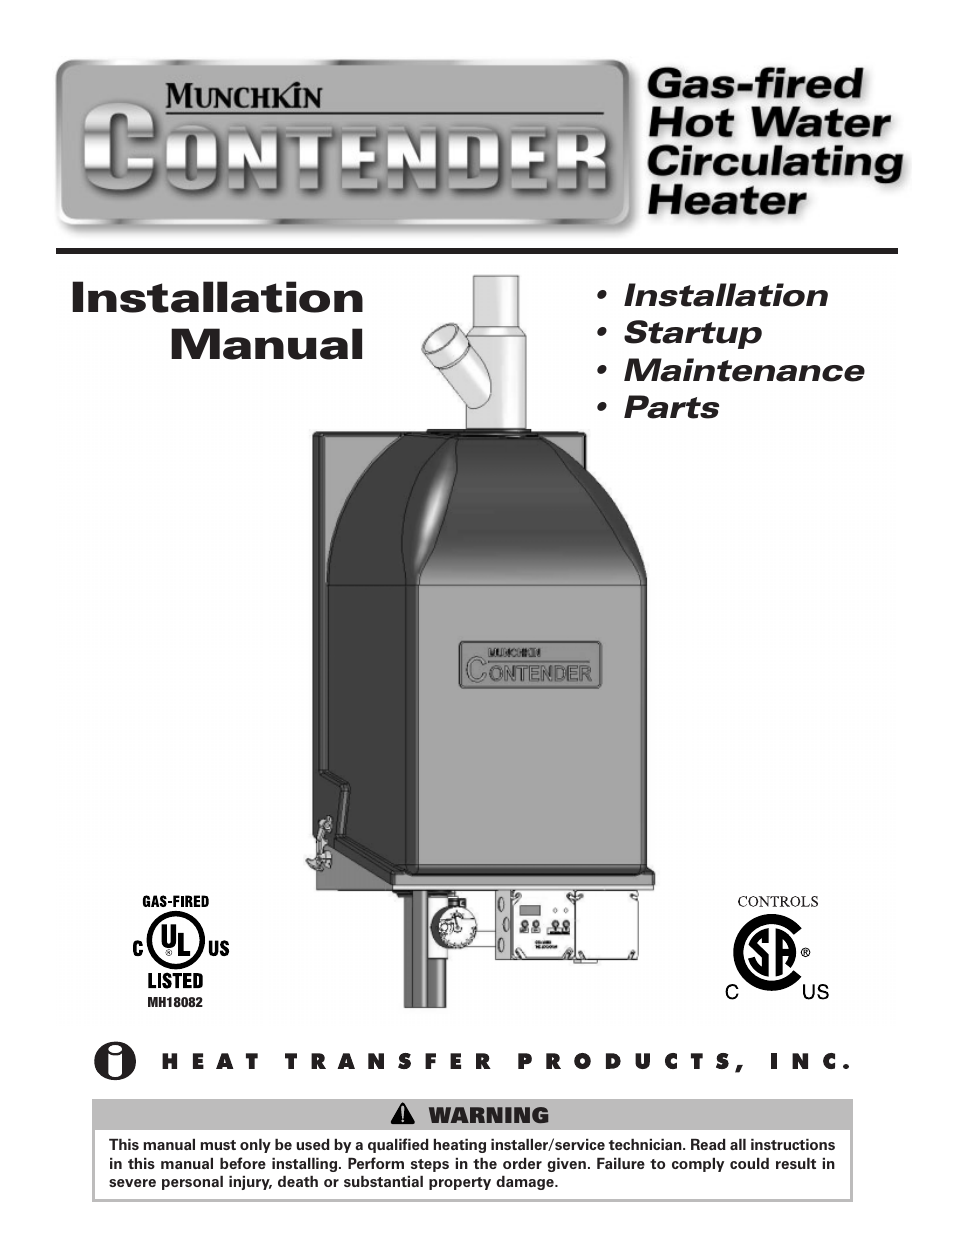 Munchkin Gas-Fired Hot Water Circulating Heater User Manual | 72 pages